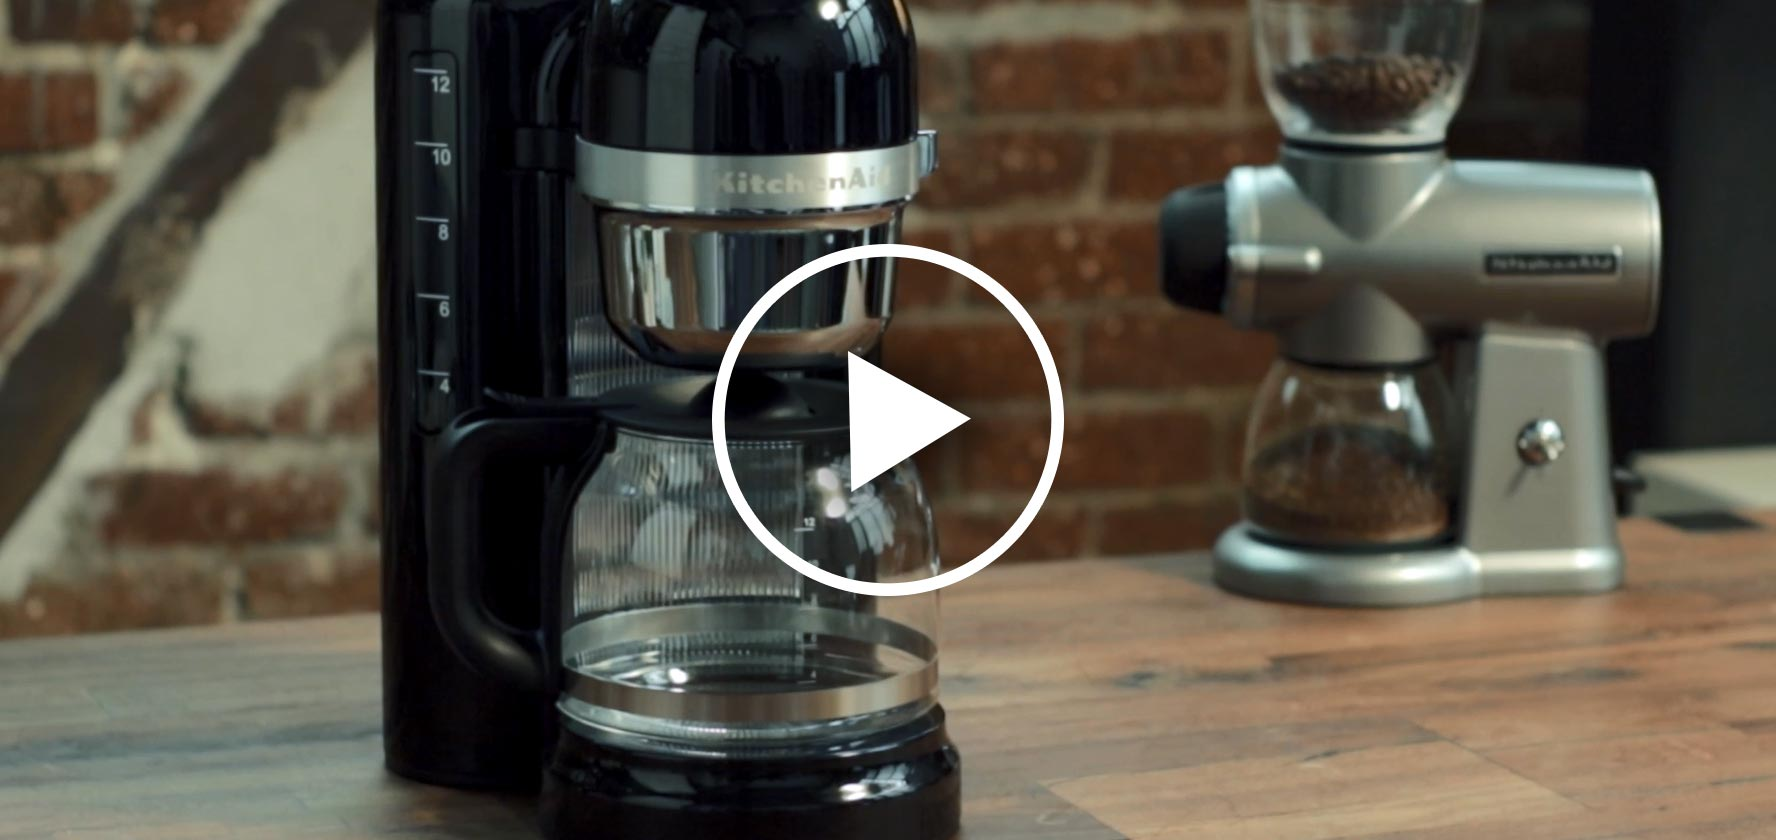 New Craft Coffee Products from KitchenAid